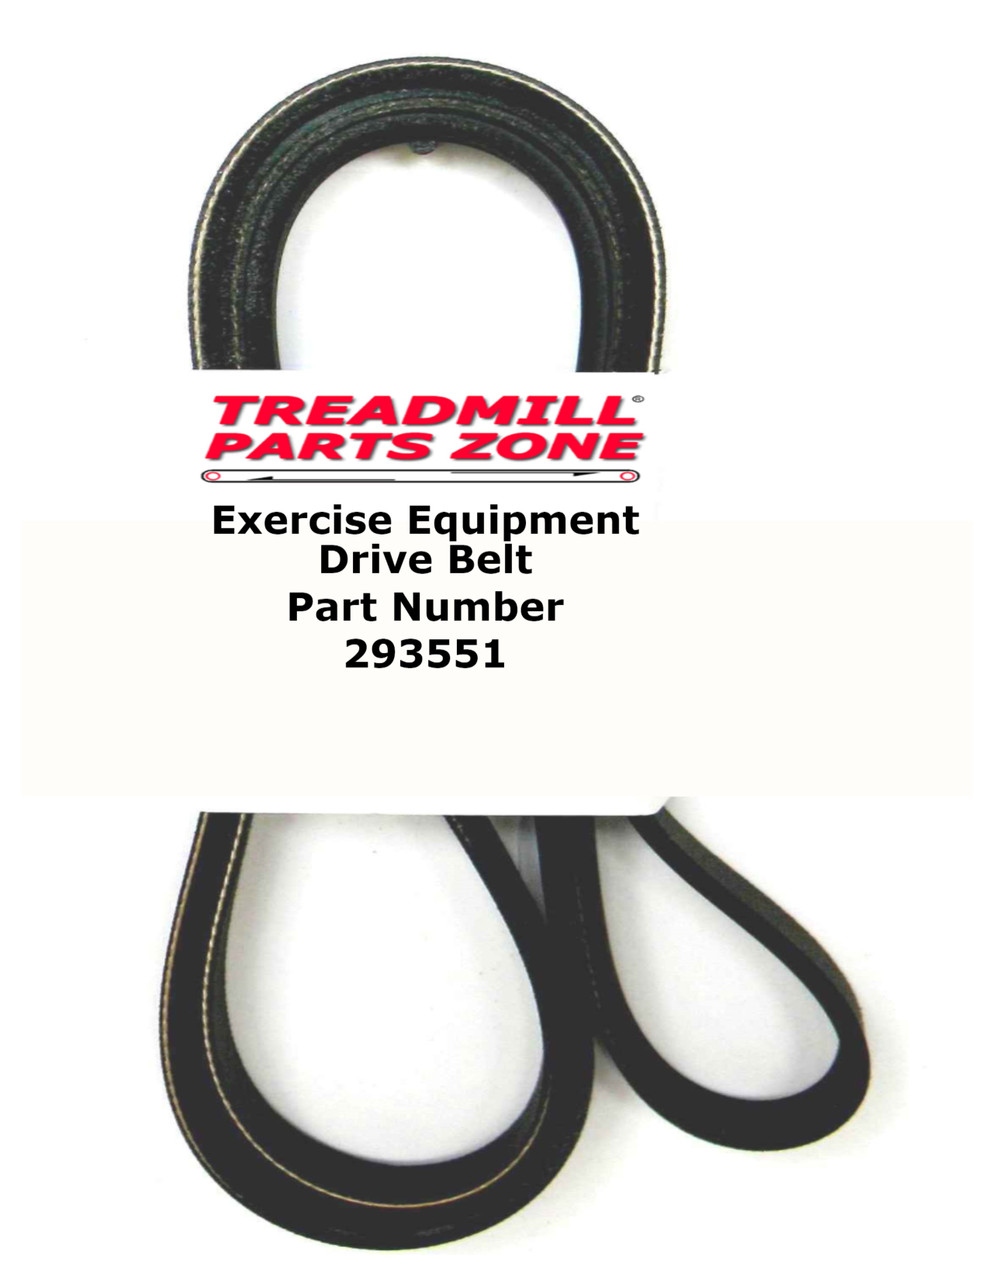 Reebok Upright Bike Model RBEX149100 TRAINER RX 4.0 Drive Belt Part Number 293551